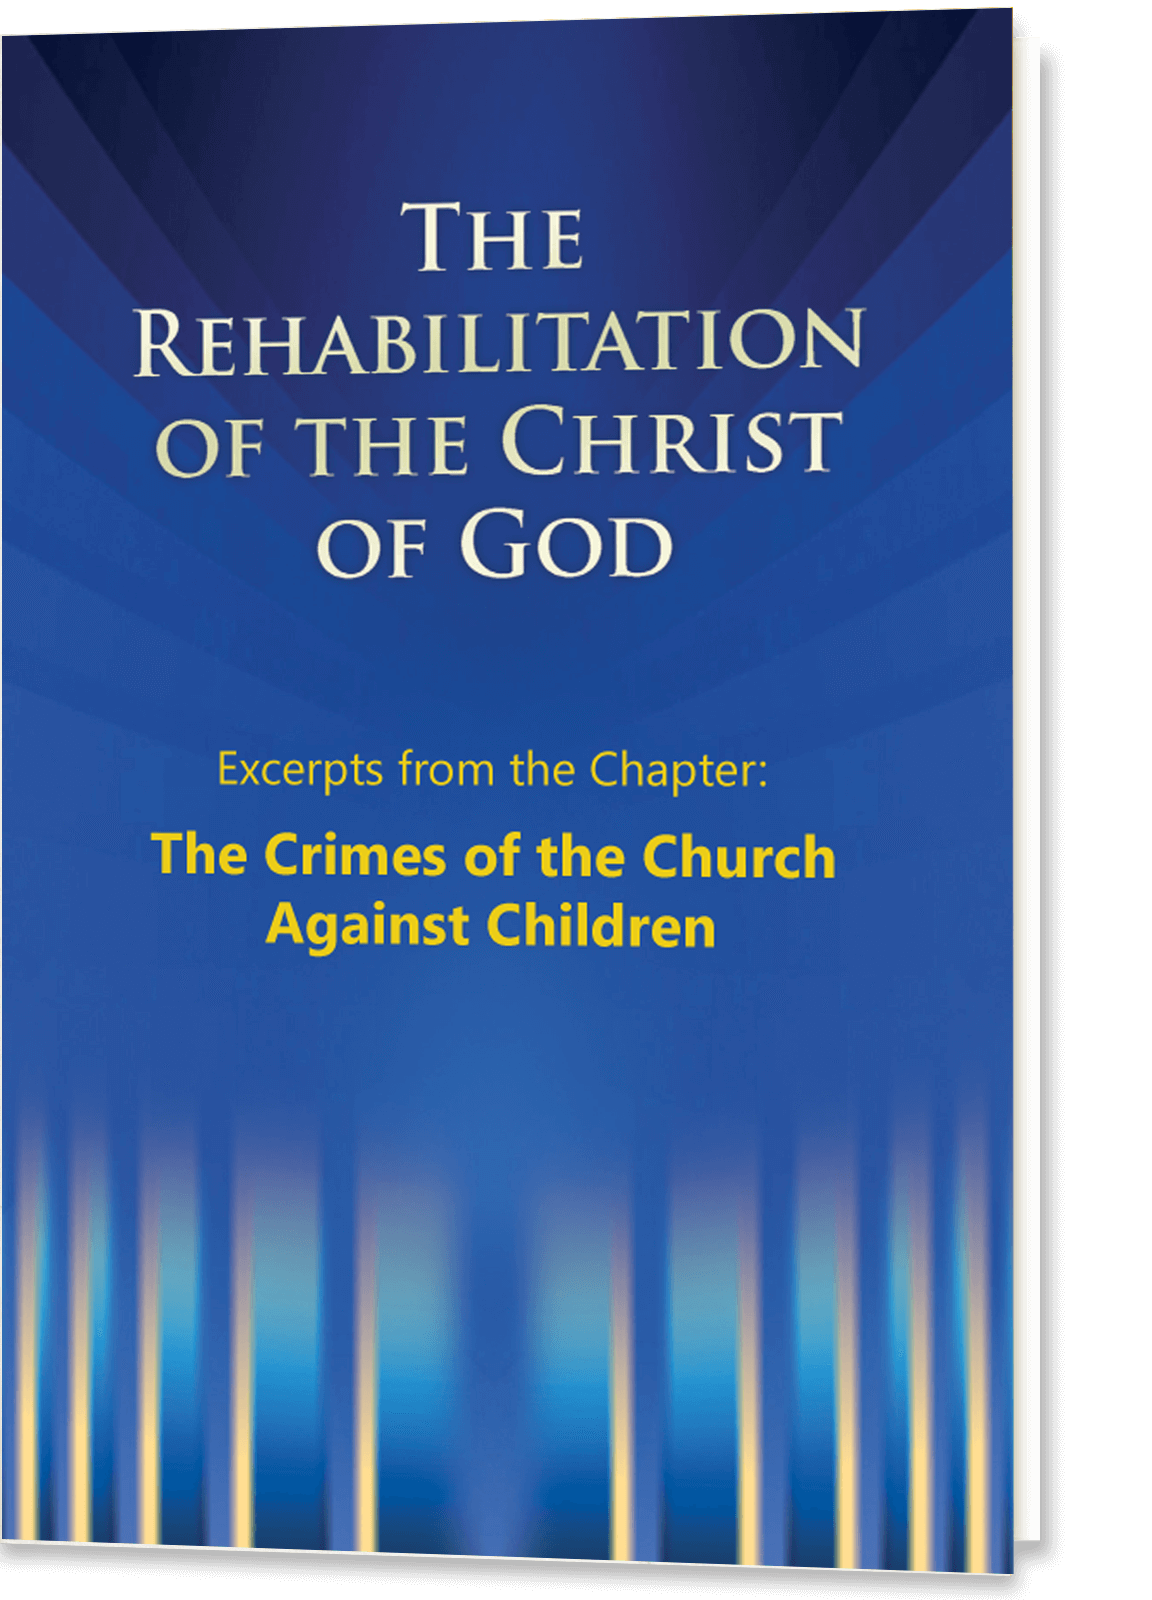 The Rehabilitation of the Christ of God - Excerpts - The Crimes of the Church Against Children